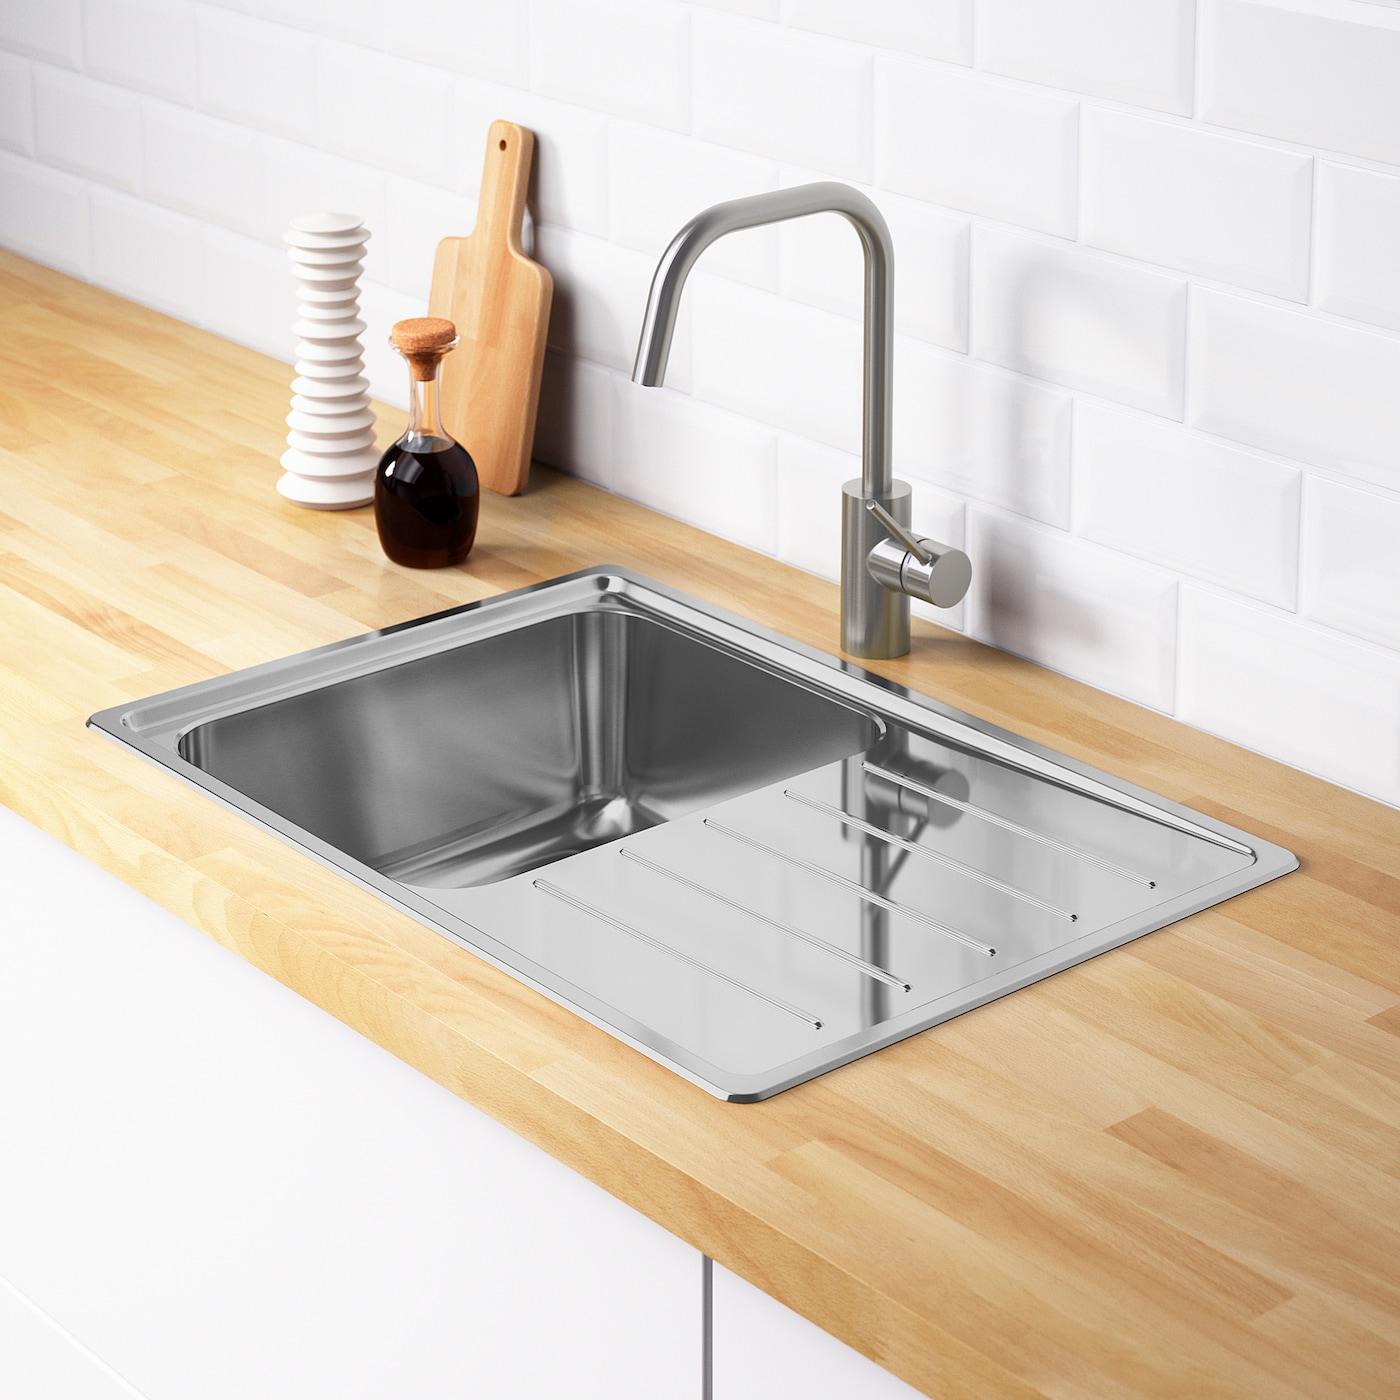 VATTUDALEN Inset sink, 10 bowl with drainboard - stainless steel 10x10 cm